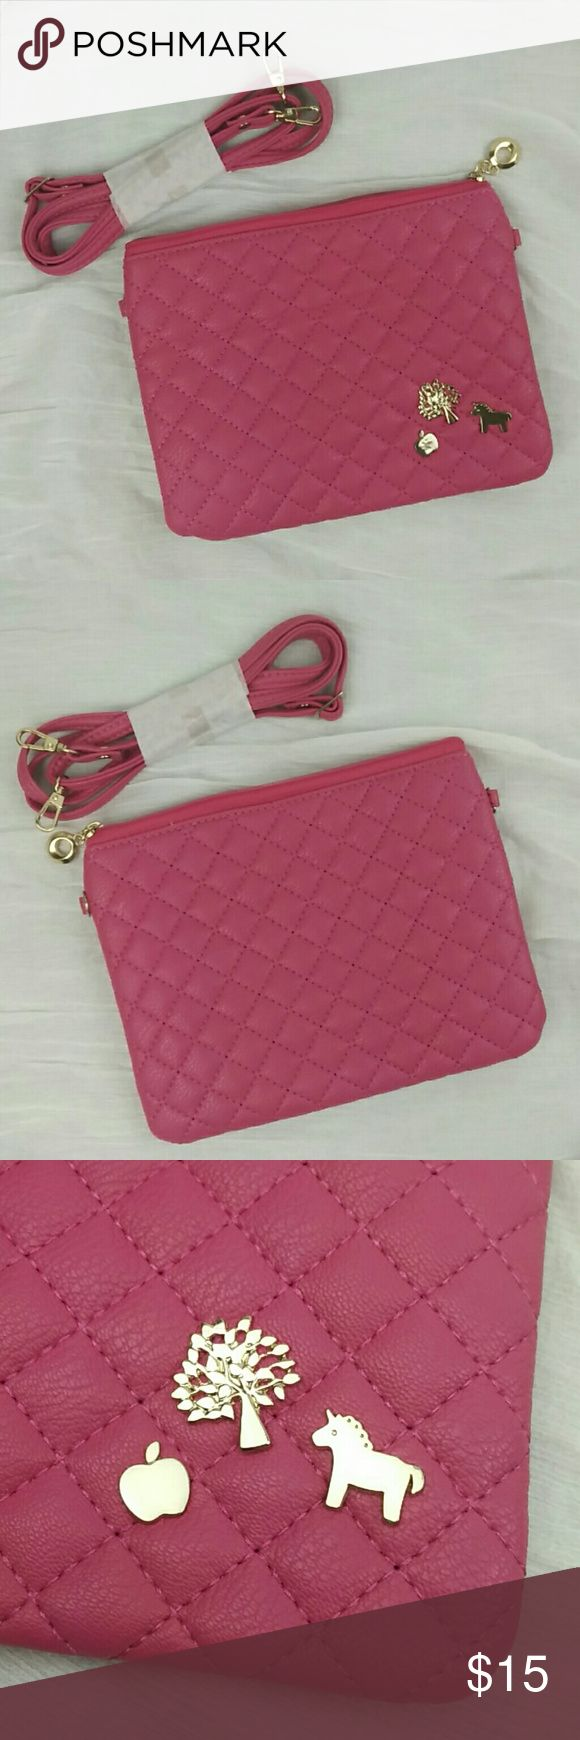 Cute hot pink shoulder bag New without tags. 8 x 6 inch, with adjustable strap 28 ~50 inch! Cute hot pink! Bags Shoulder Bags